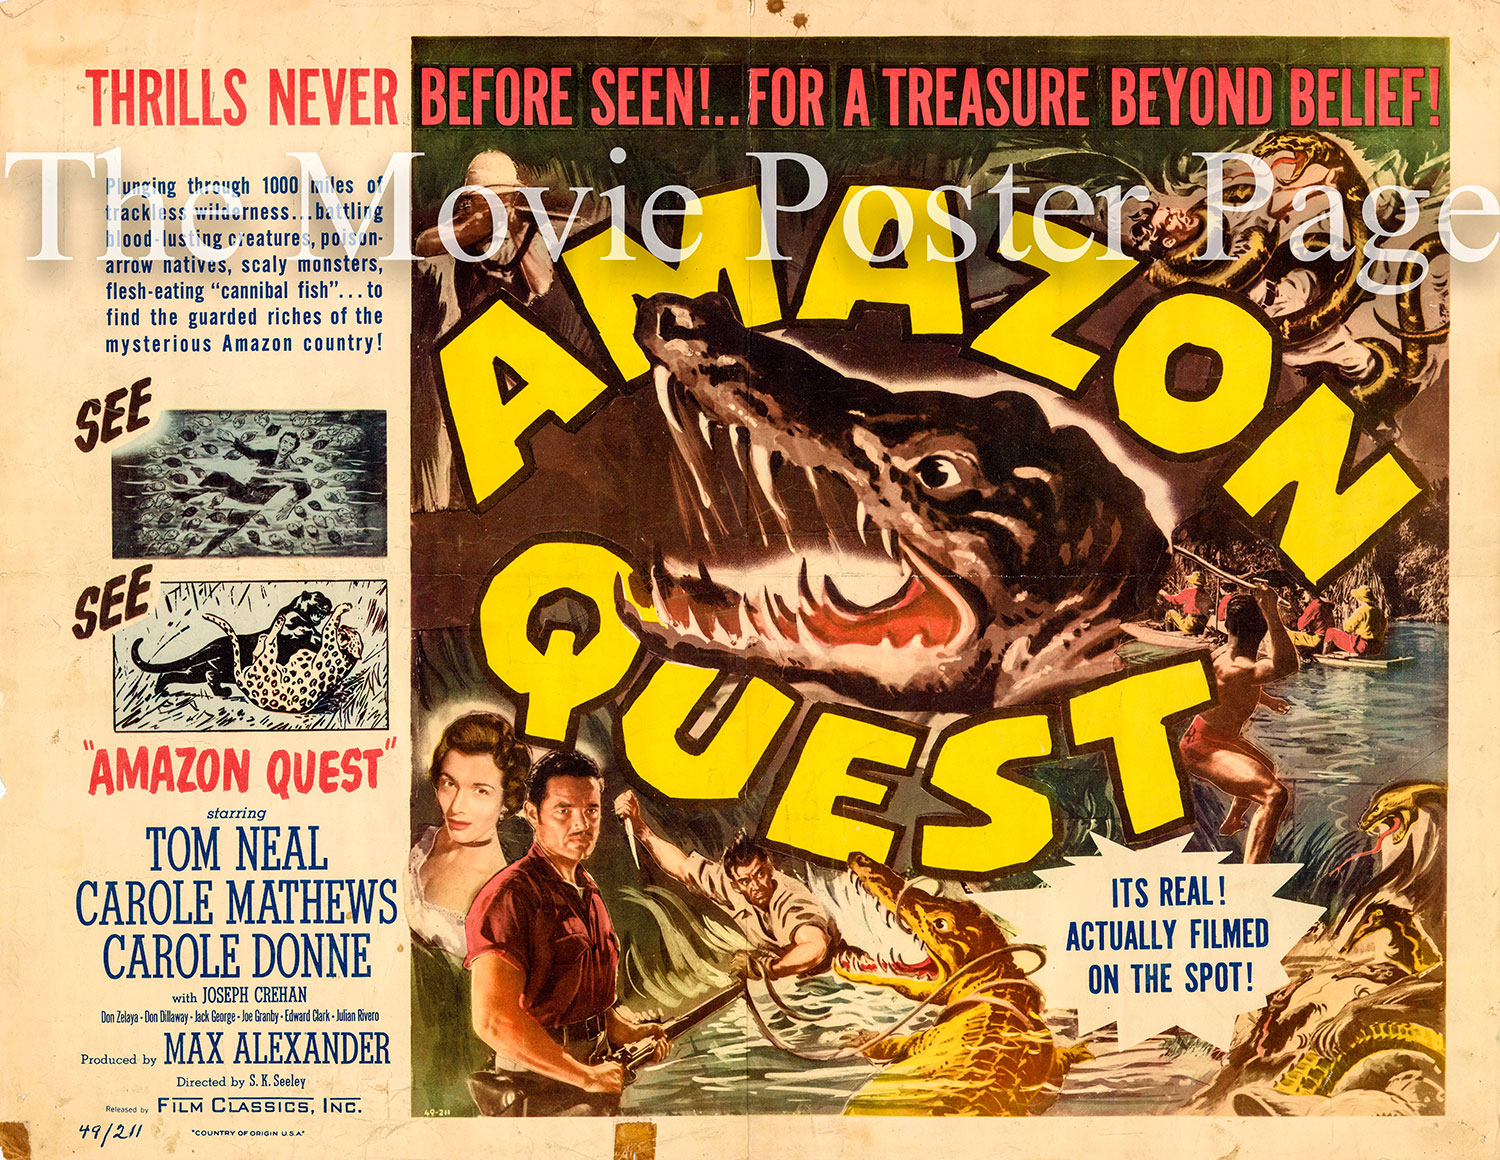 Pictured is a US half-sheet poster for the 1949 Steve Sekely film Amazon Quest starring Tom Neal.